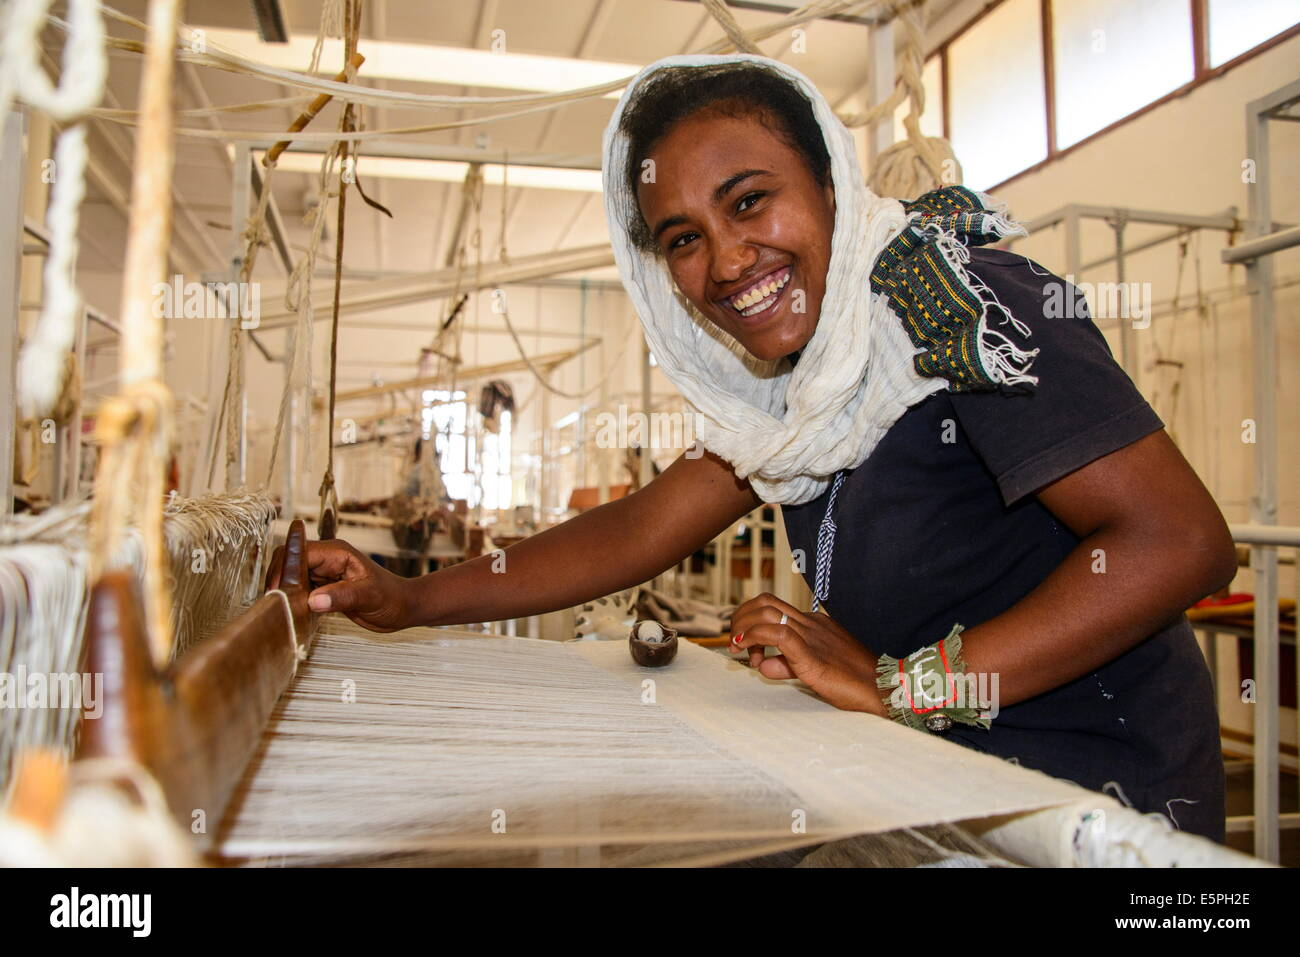 Friendly woman working on a hand weaving loom on a social project in the highlands of Eritrea, Africa - Stock Image